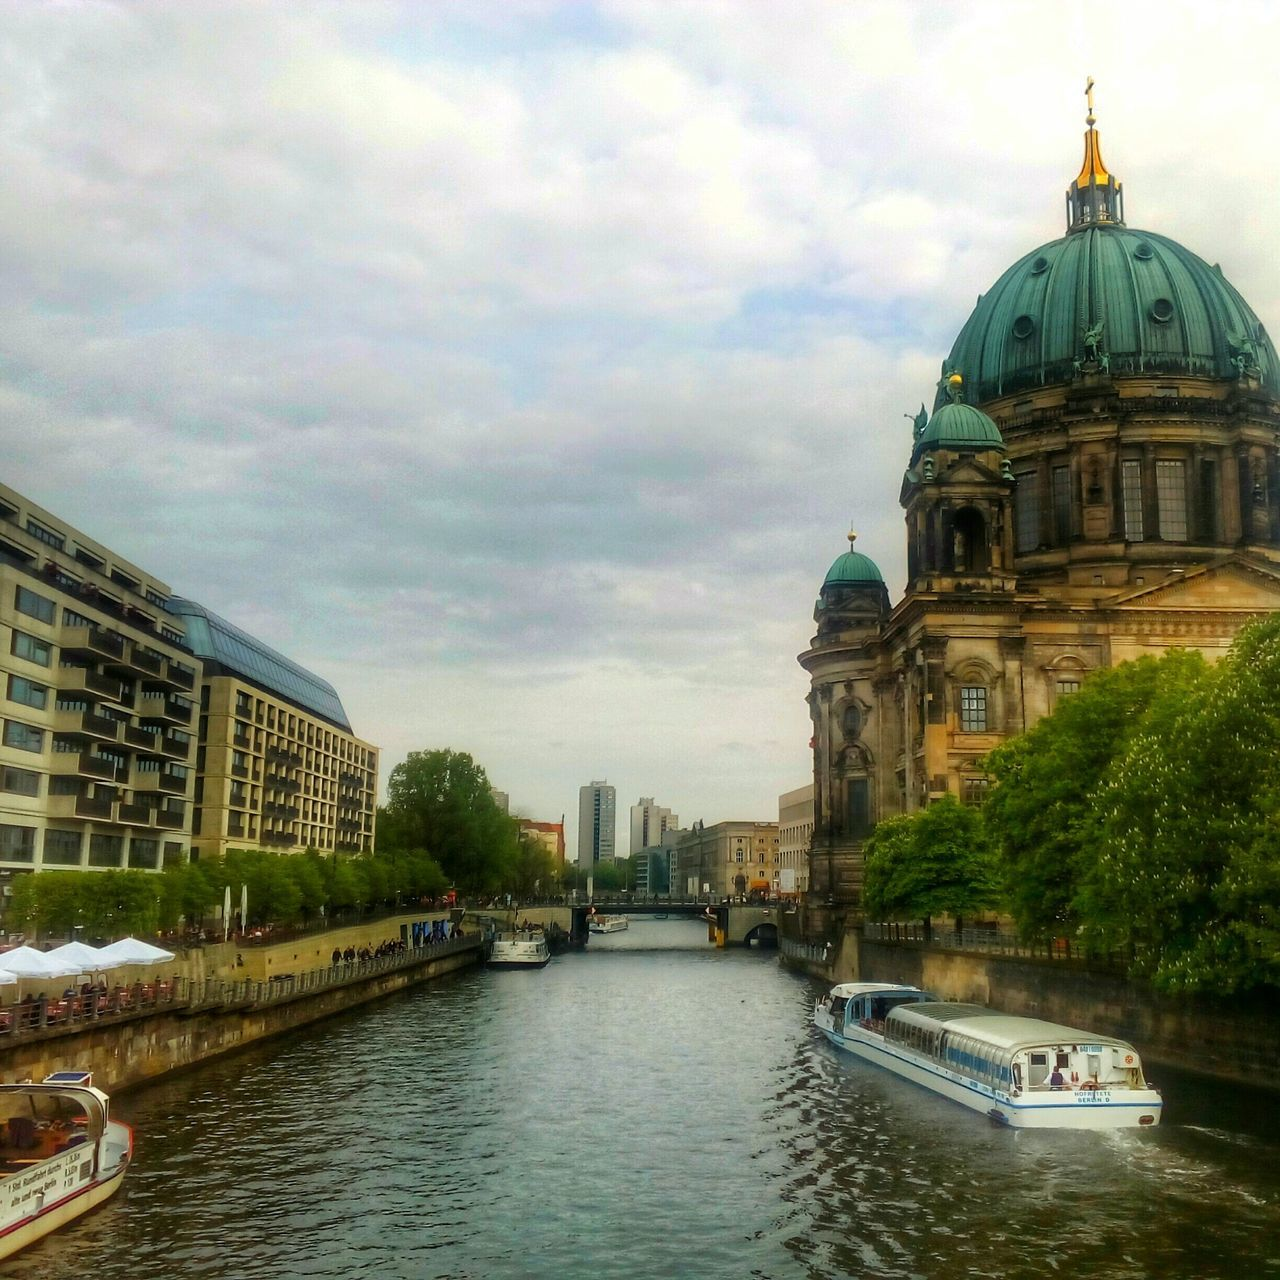 Building Exterior Cloud - Sky Water Travel Destinations Dome River Cityscape Walking Around Visual Poetry EyeEm Best Shots Geometric Lines EyeEmBestPics EyeEm Gallery Walking Around The City  Point Of View Street Life Urban Lifestyle Urbanscape Berlin Life Urban Landscape Berlin Street Photography Leisure Activity Urban Reflections Reflections In The Water Architecture